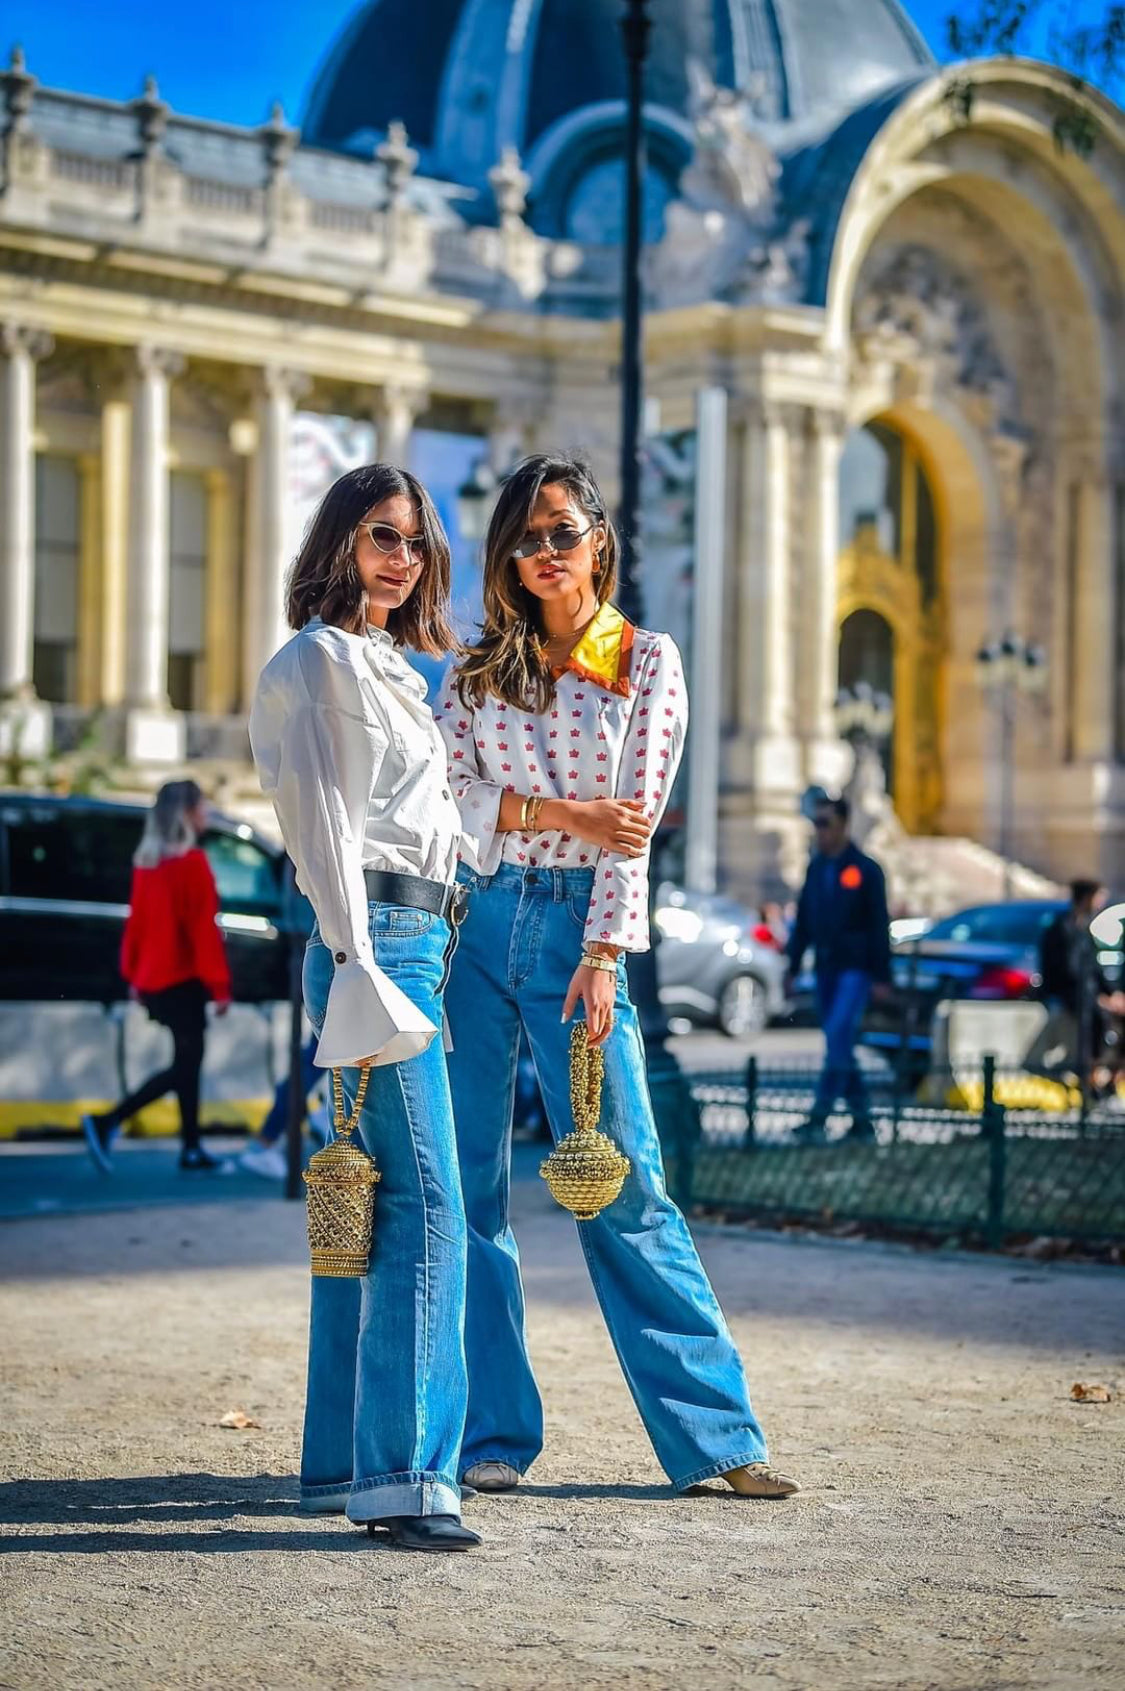 Stylechine's resident columnist's Felicia Evalina spotted with Anisa Soijka wearing the Mae Cassidy, Simi Sparkle and Rekha Reflect Bracelet clutch bag at Paris Fashion Week.  Anisa and Felicia styled the bags with a casual 70's twist; casualing down their look with Circuit Collective flared jeans and oversized, wide collar, Lisou and EDIT Collection shirts - to achieve a twinning look we're envious of! Grab your gal pal and get shopping this autumn look! photo by david yanzi